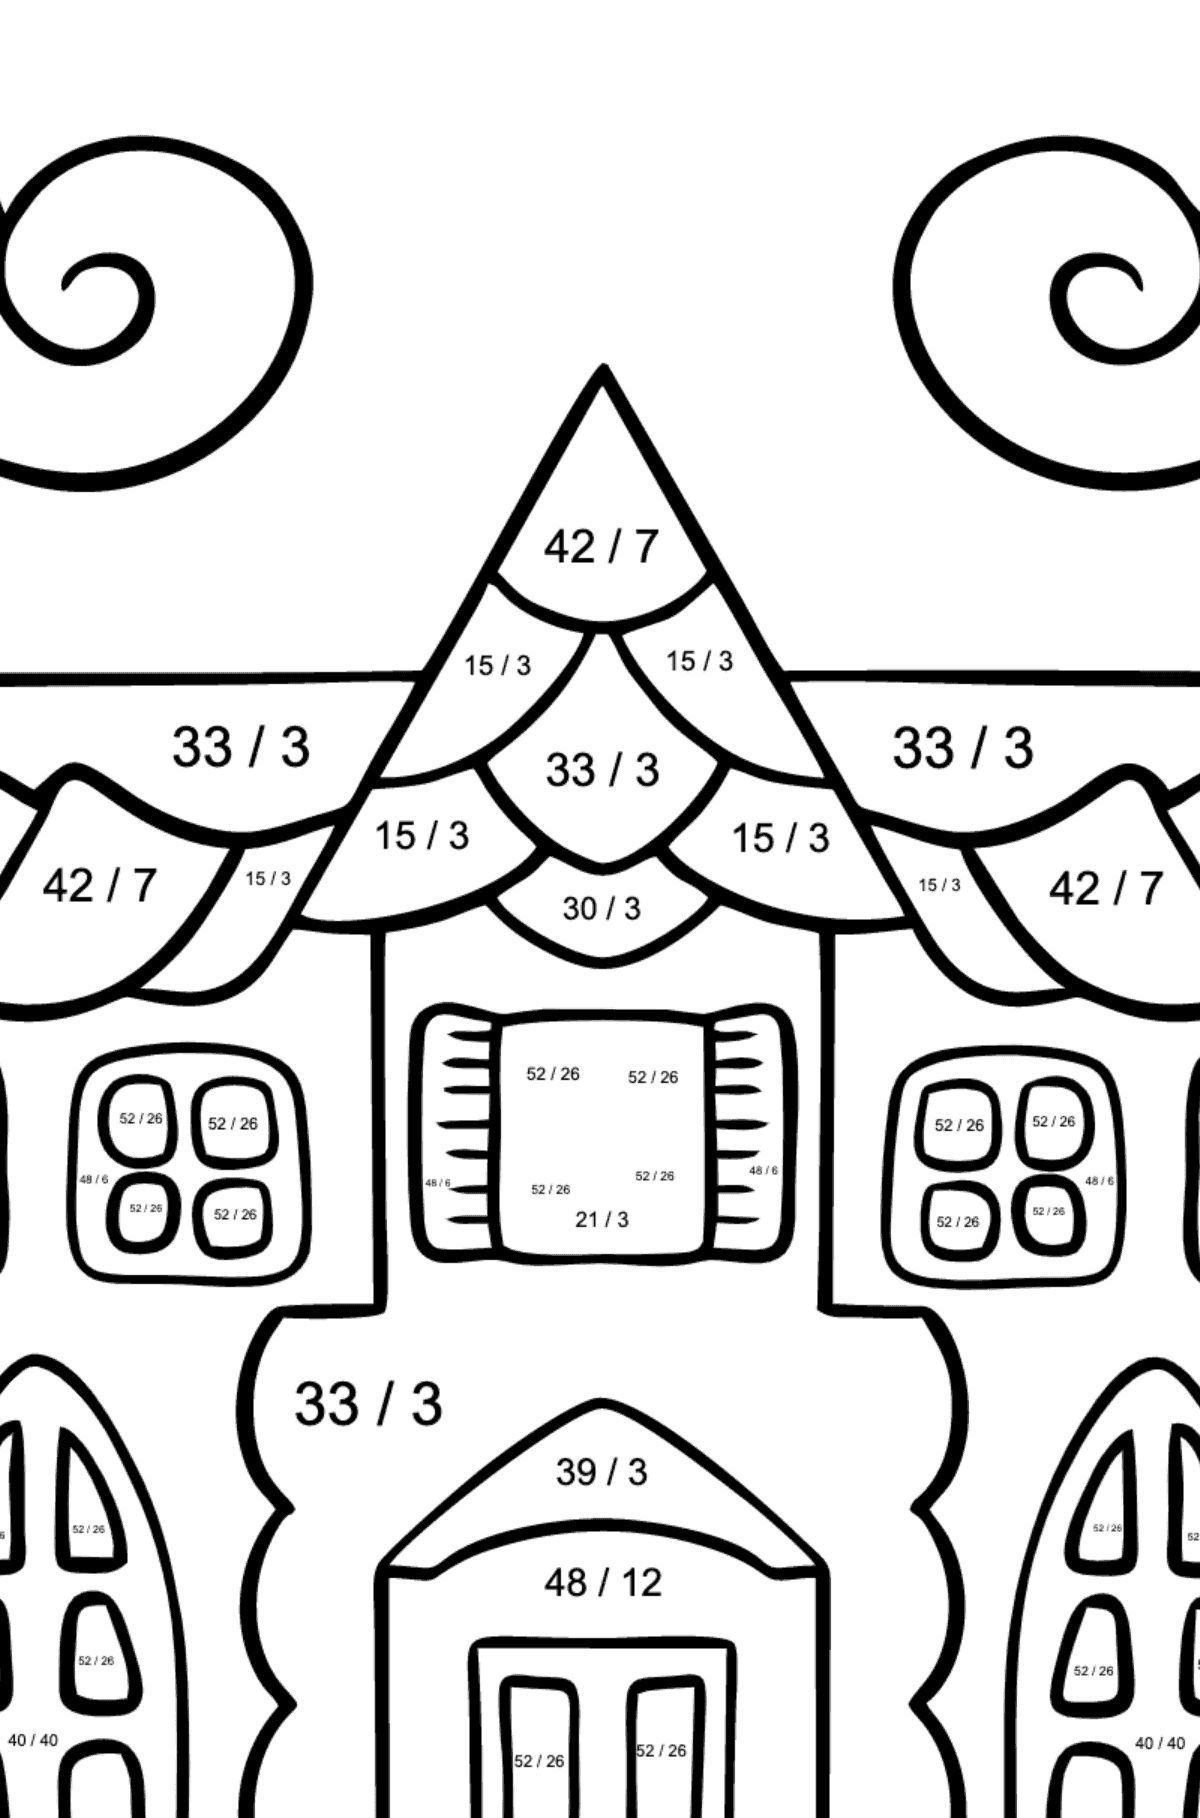 Complex Coloring Page - A House in an Enchanted Kingdom - Math Coloring - Division for Kids